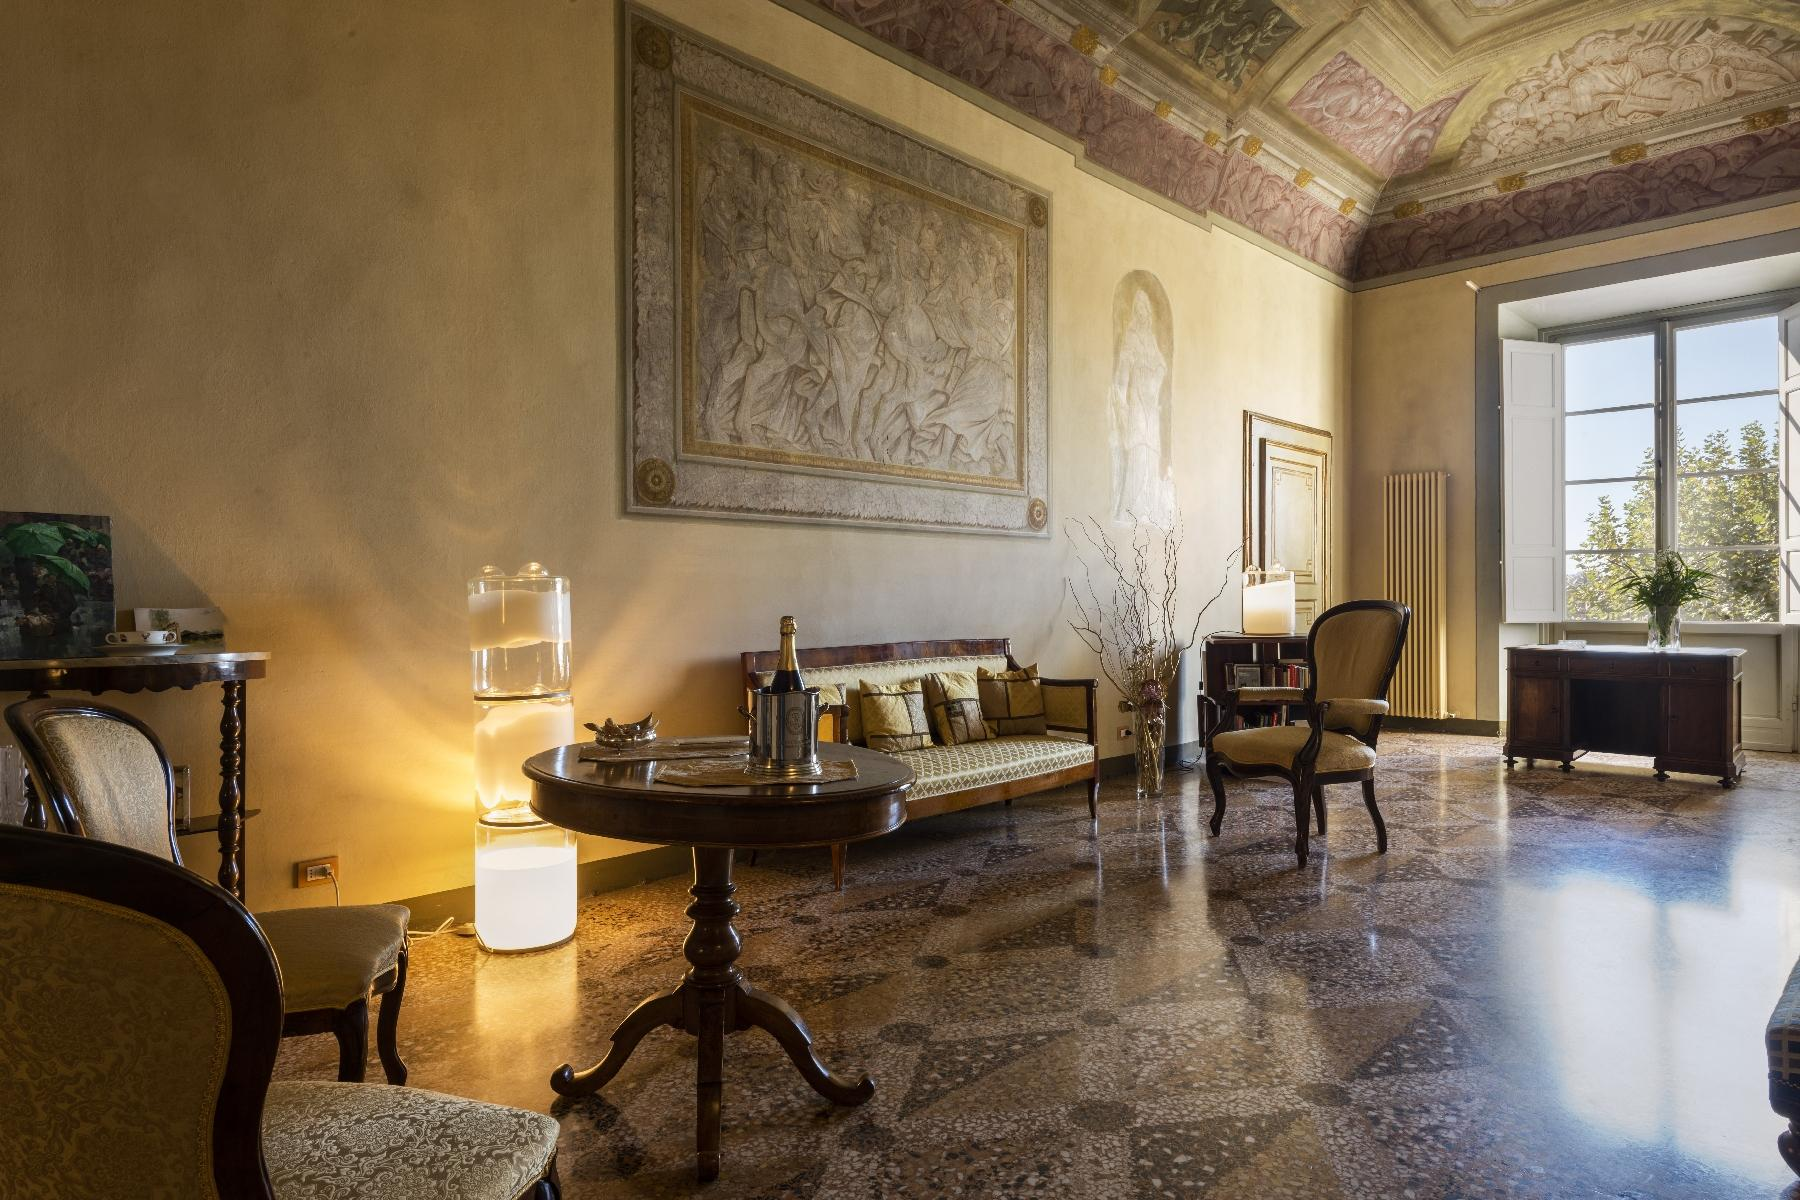 Stunning 18th century villa in the heart of Tuscany - 8